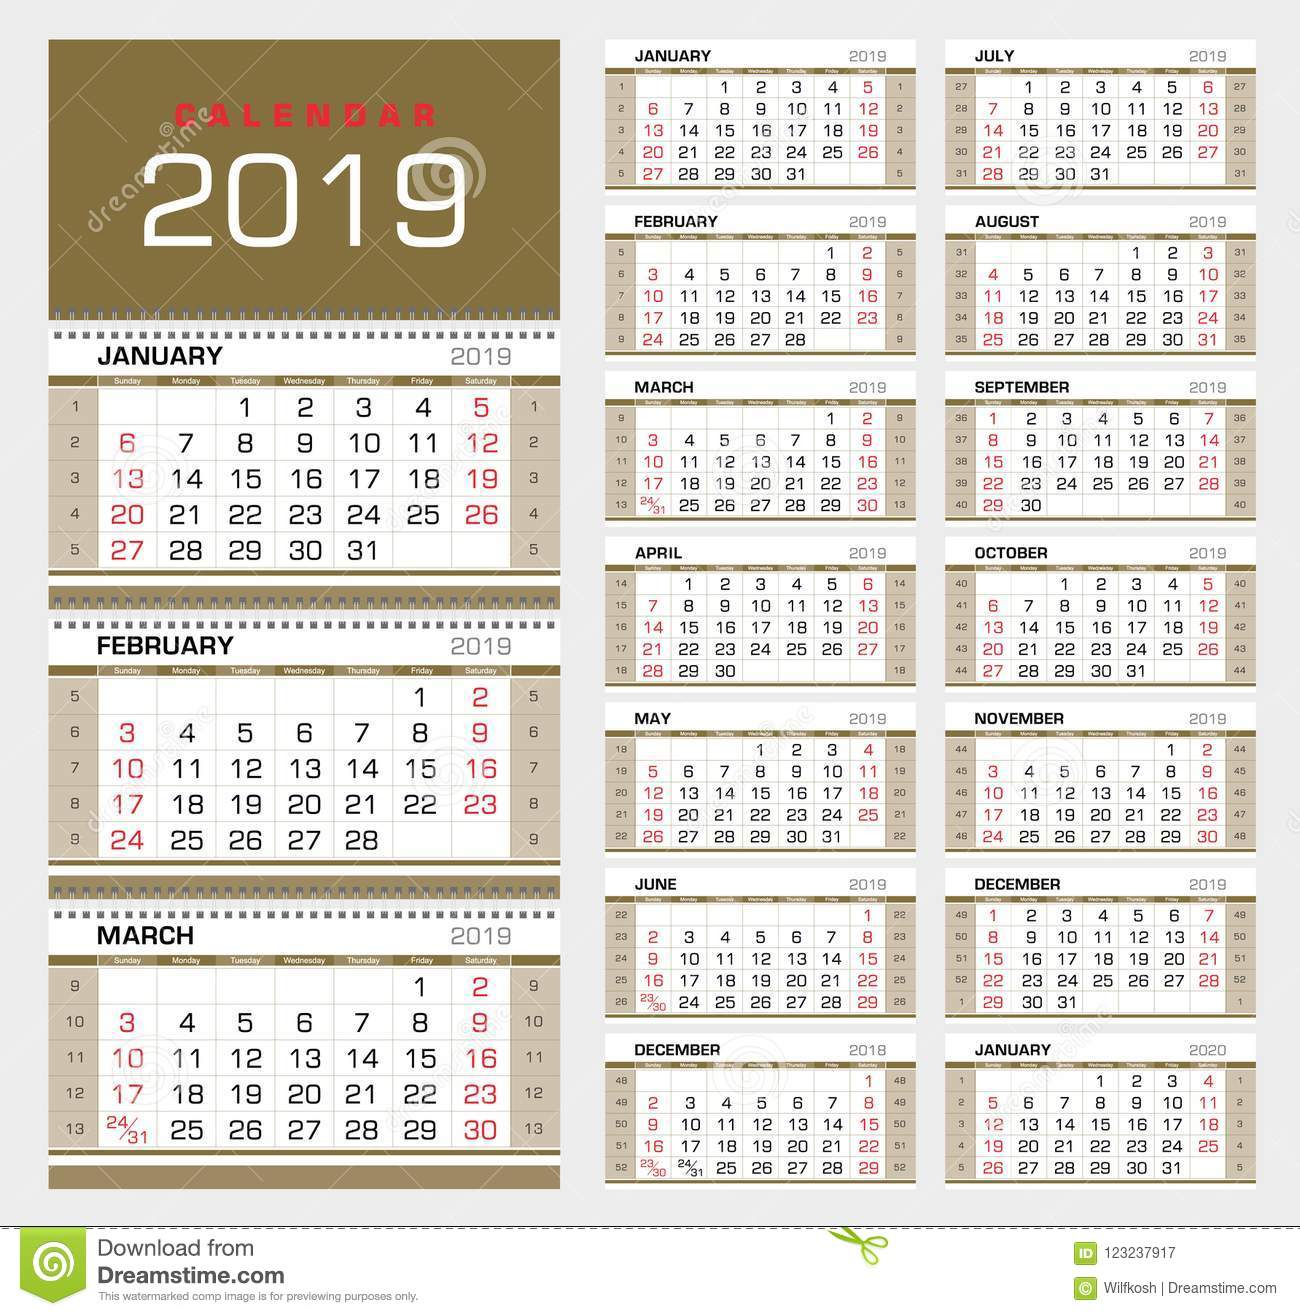 Calendar 2019 With Week Numbers Wall Quarterly Calendar 2019 With Week Numbers. Week Start From